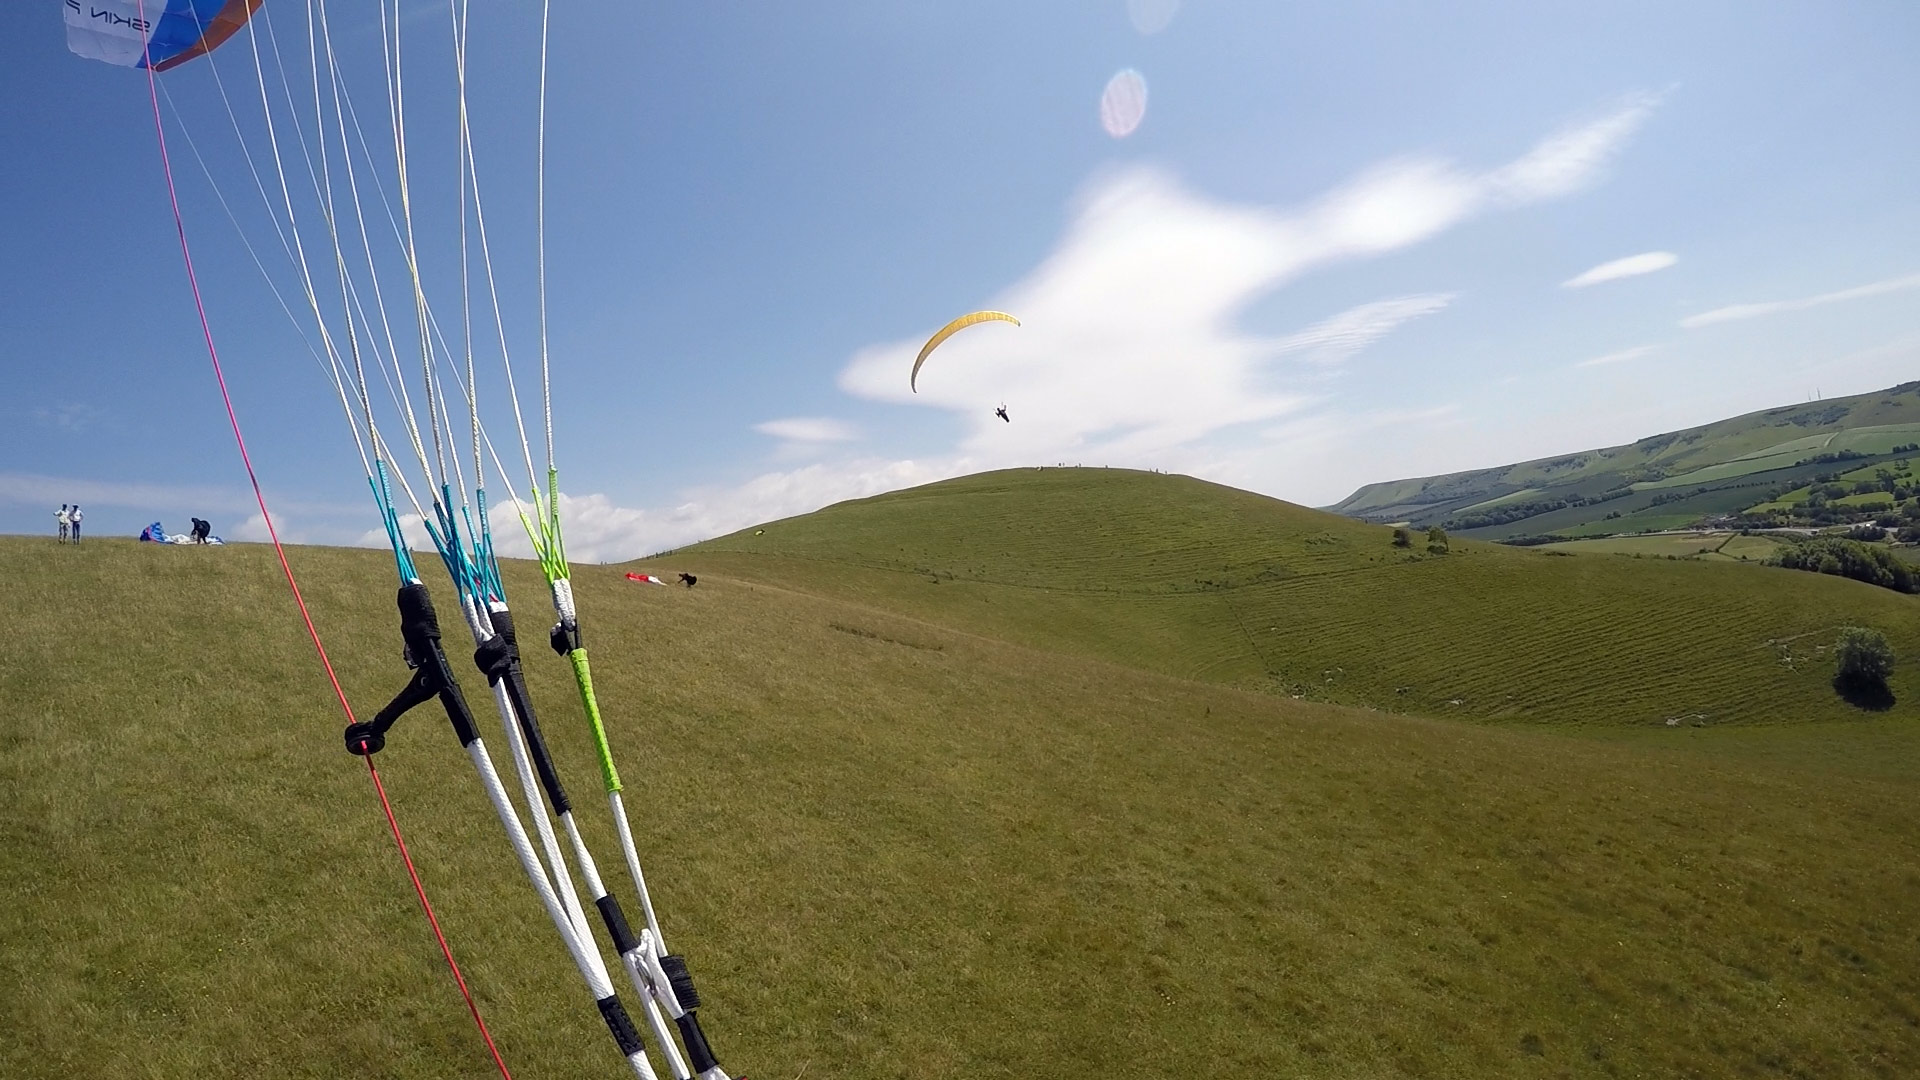 76b6ac81a3 First Flight Review - Flybubble Blog